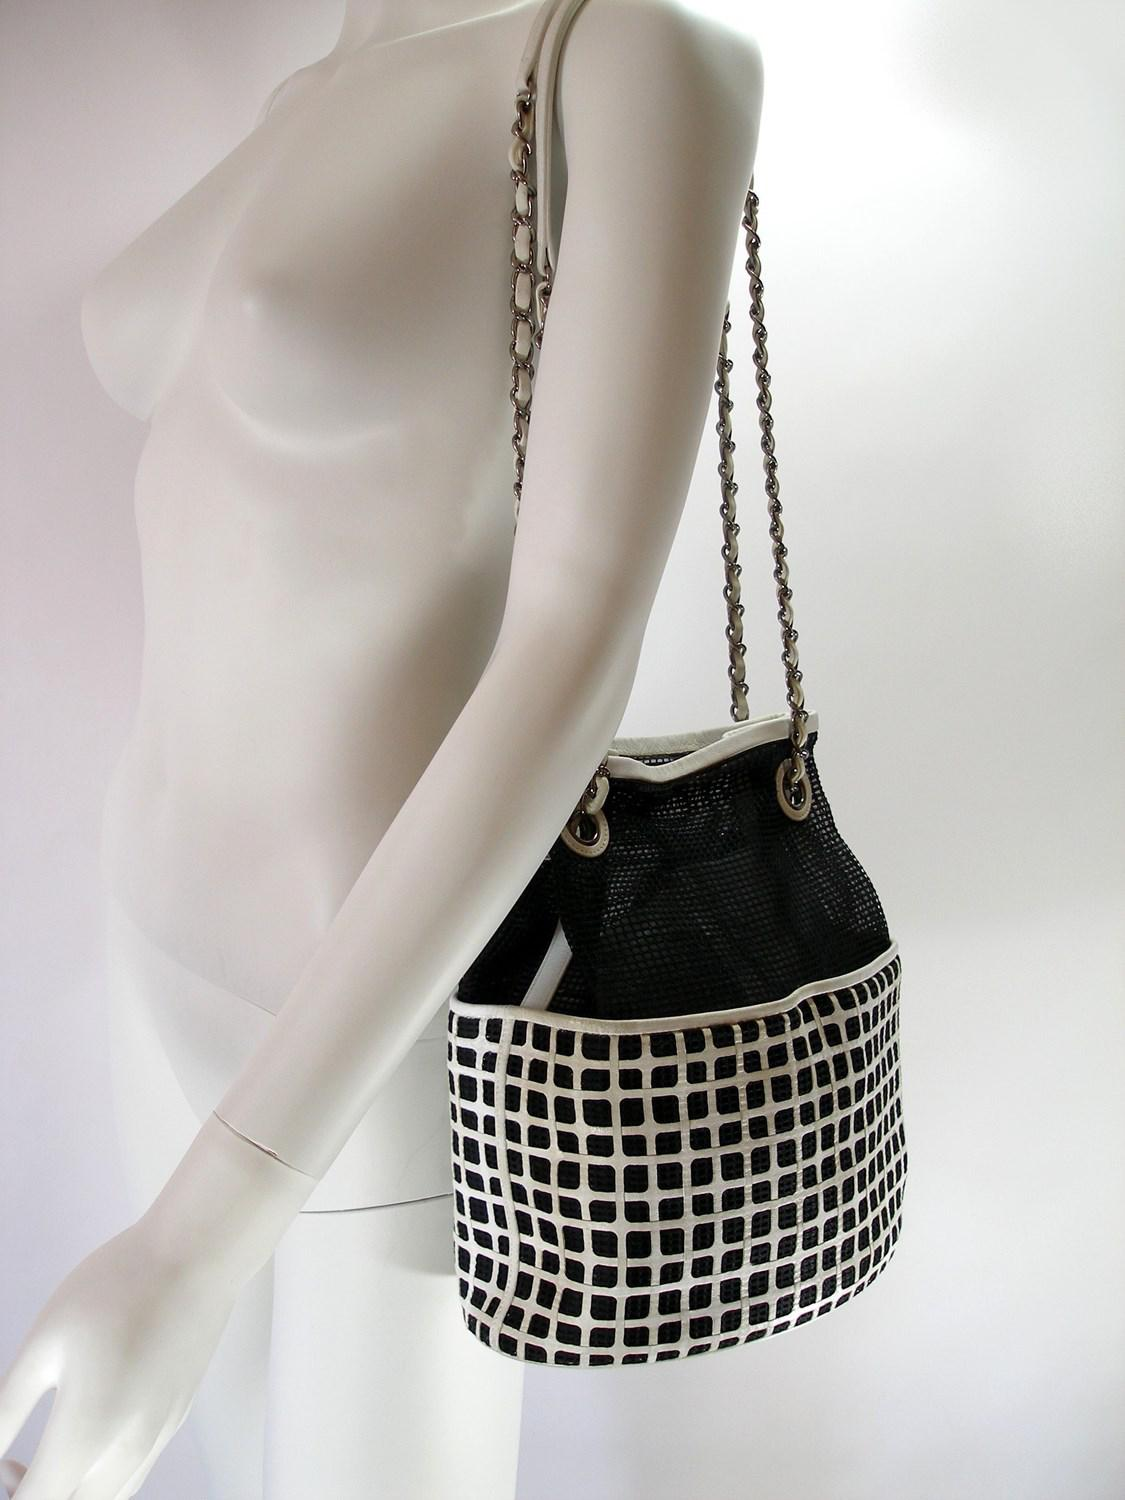 7958b07bf5ea98 Chanel Edition Limited White Leather And Mesh Black Fabric Bucket ...